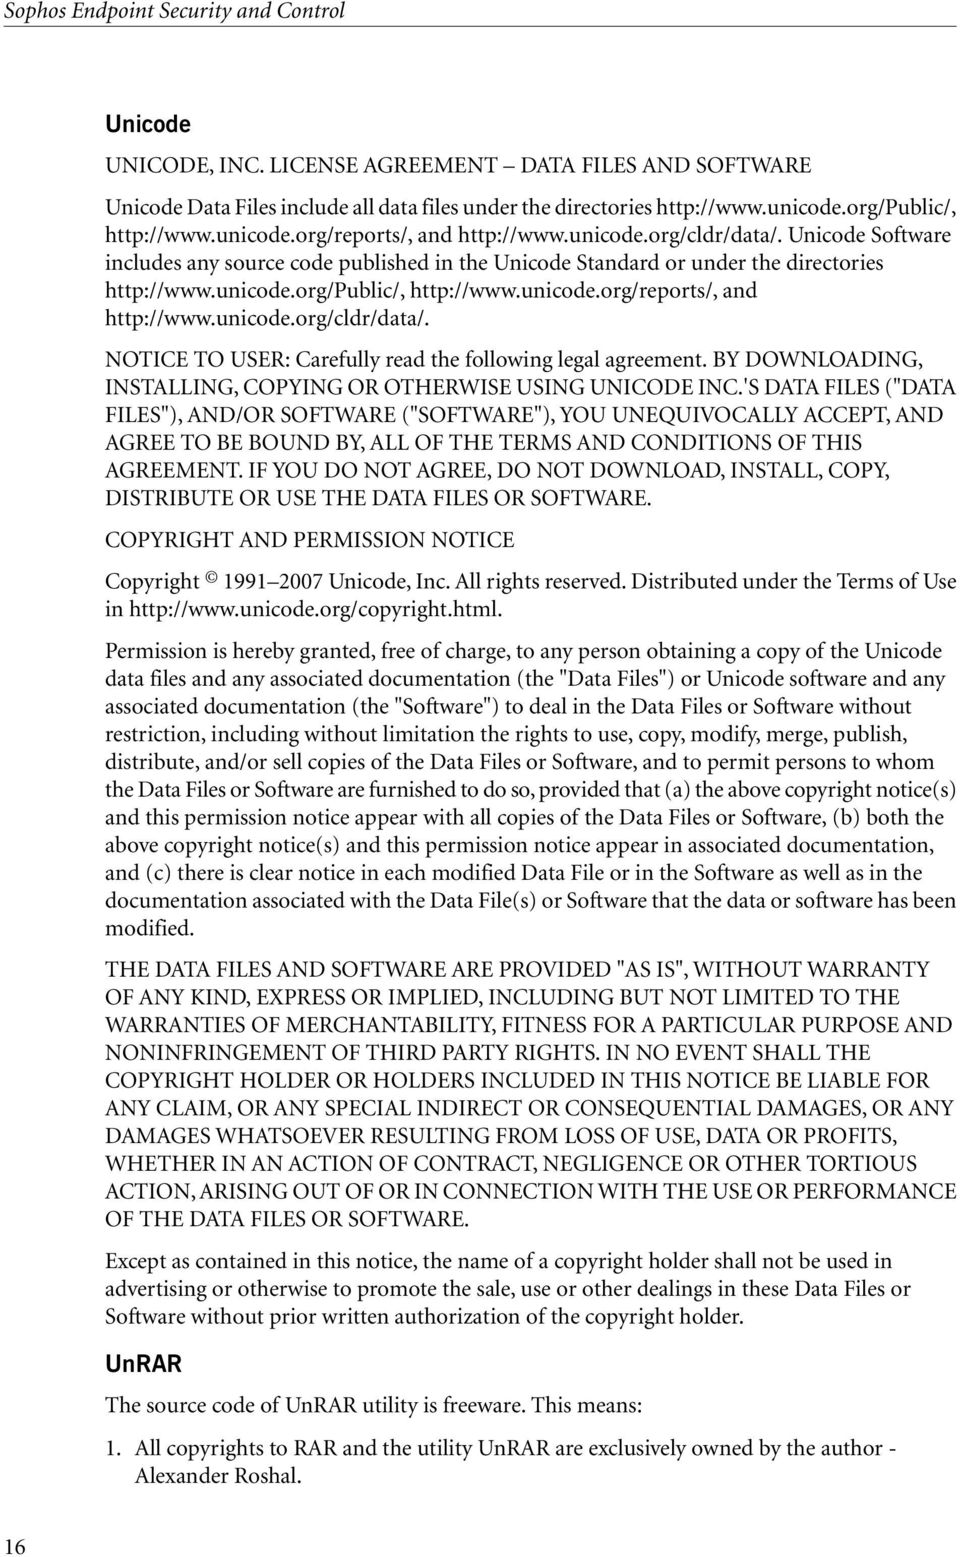 unicode.org/public/, http://www.unicode.org/reports/, and http://www.unicode.org/cldr/data/. NOTICE TO USER: Carefully read the following legal agreement.